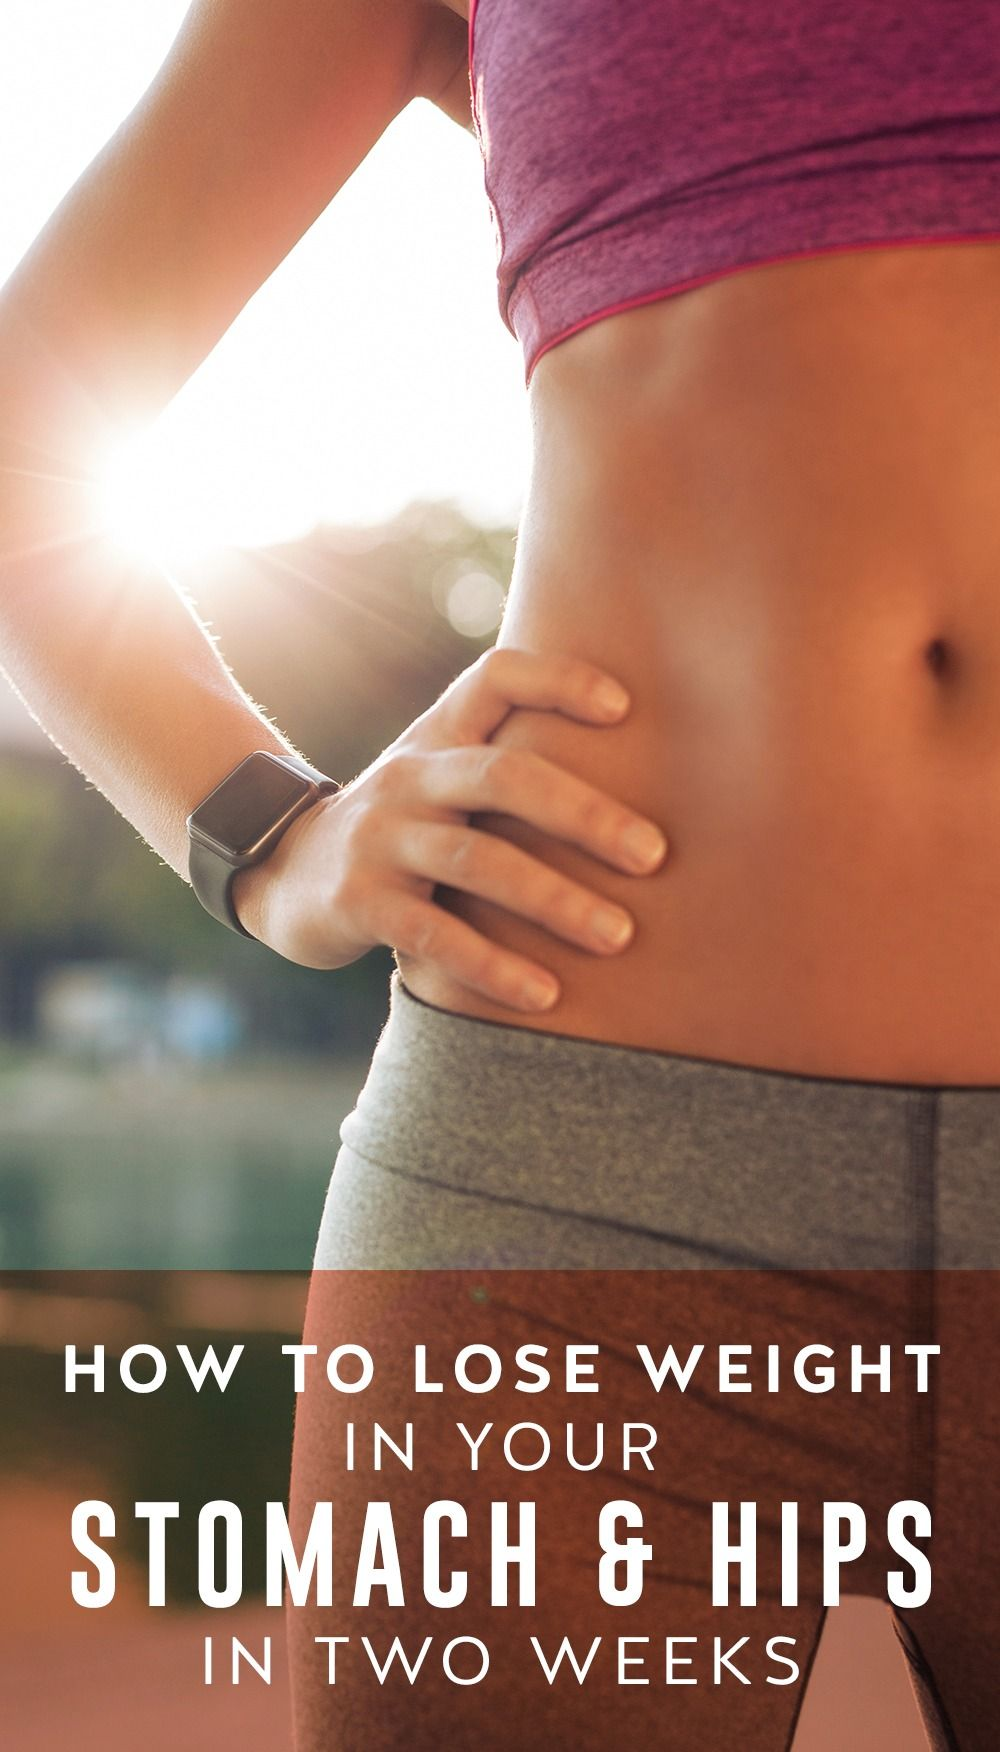 How to lose weight in your stomach and hips in two weeks pinterest you cant target just your belly and hips for weight loss but a low calorie plan that focuses on whole foods along with dedicated exercise will help you ccuart Image collections